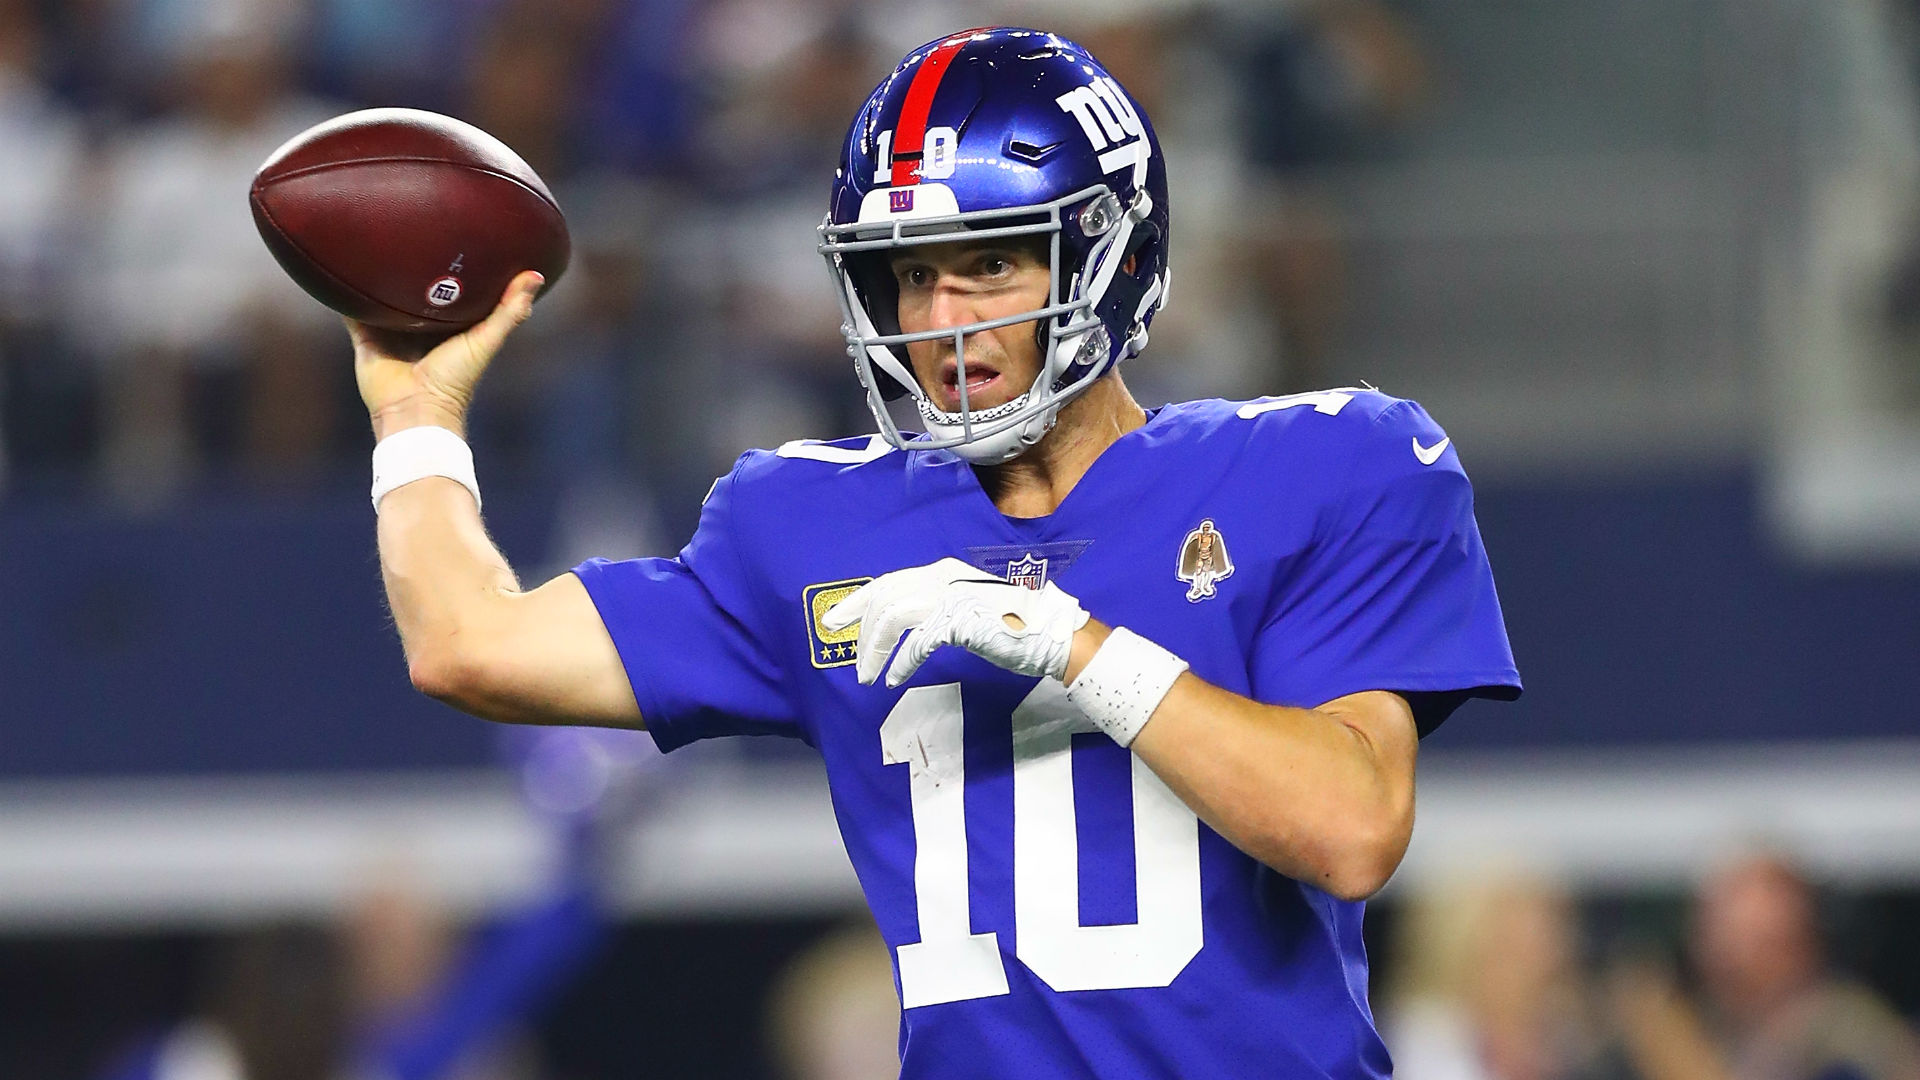 Eagles vs. Giants player prop bets, picks for 'Monday Night Football'